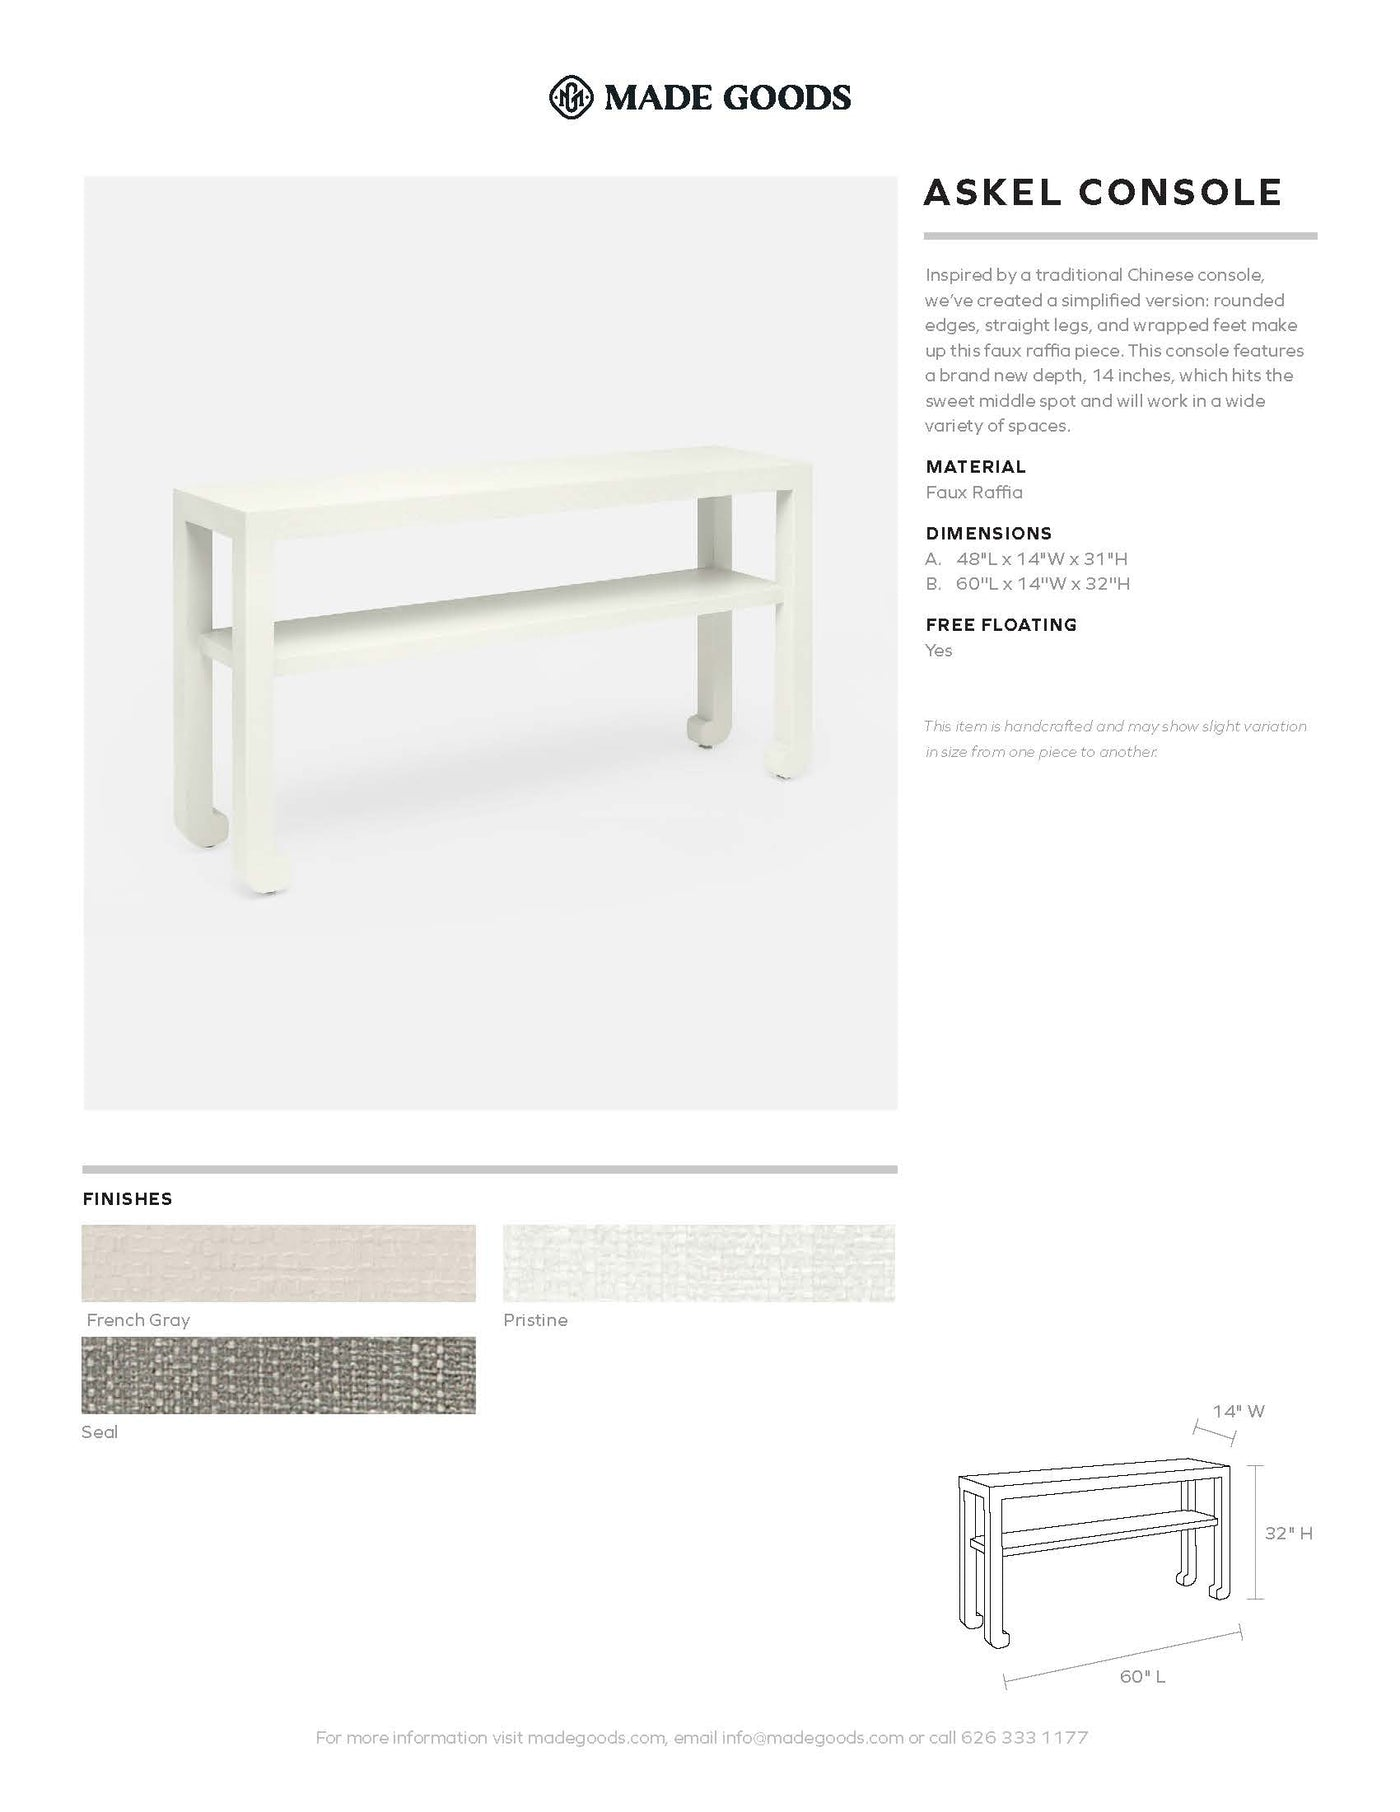 made goods askel console tearsheet